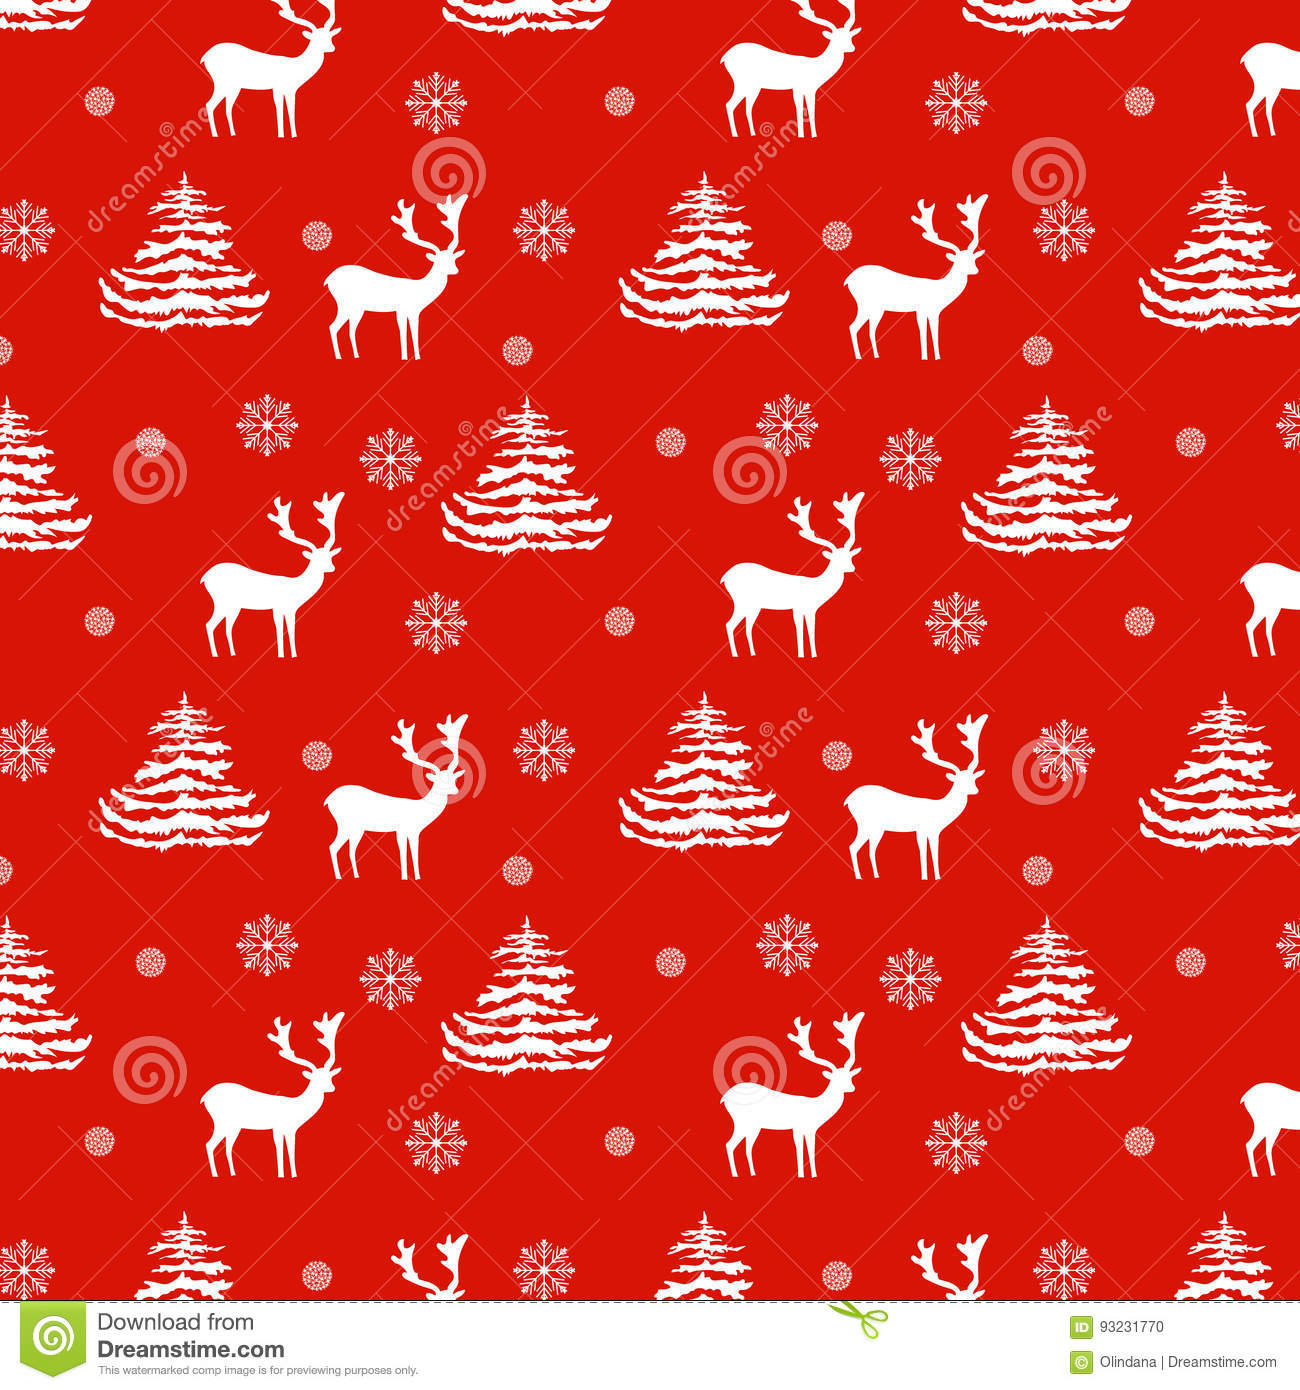 Seamless Christmas pattern hand drawn realistic reindeers, fir trees, snowflakes, white silhouette on red background